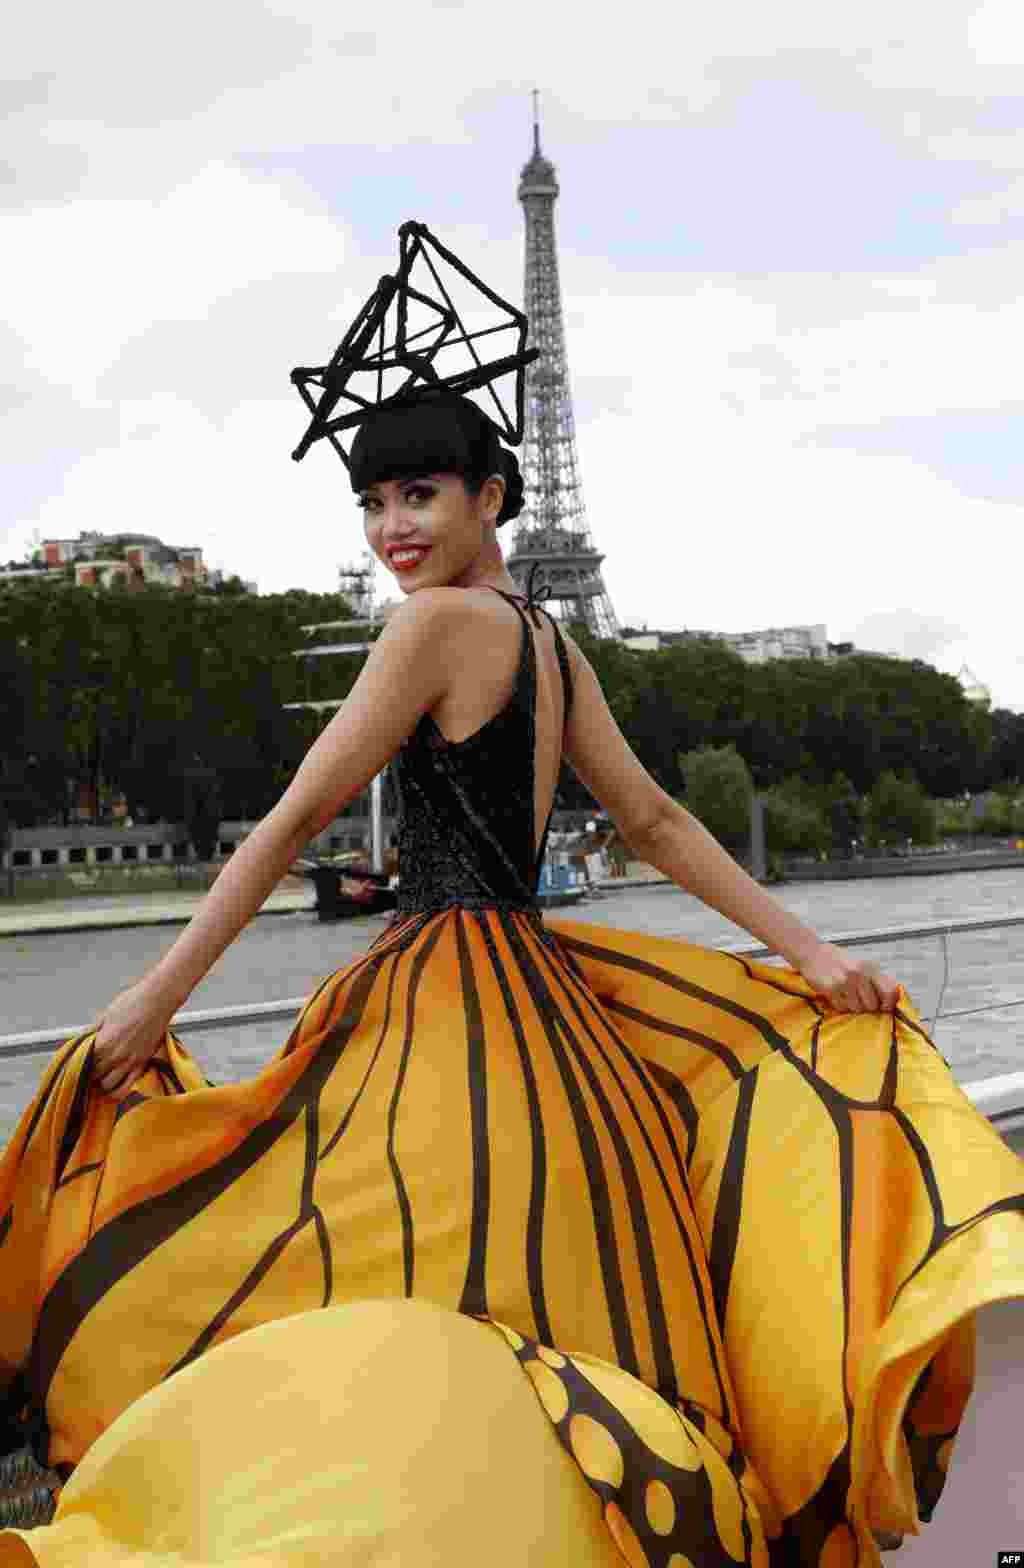 Vietnamese fashion show organizer, producer and model Jessica Minh Anh presents a creation during a fashion show on a tourist river boat cruising the Seine, as part of the J Autumn Fashion Show 2016 near the Eiffel Tower in Paris.